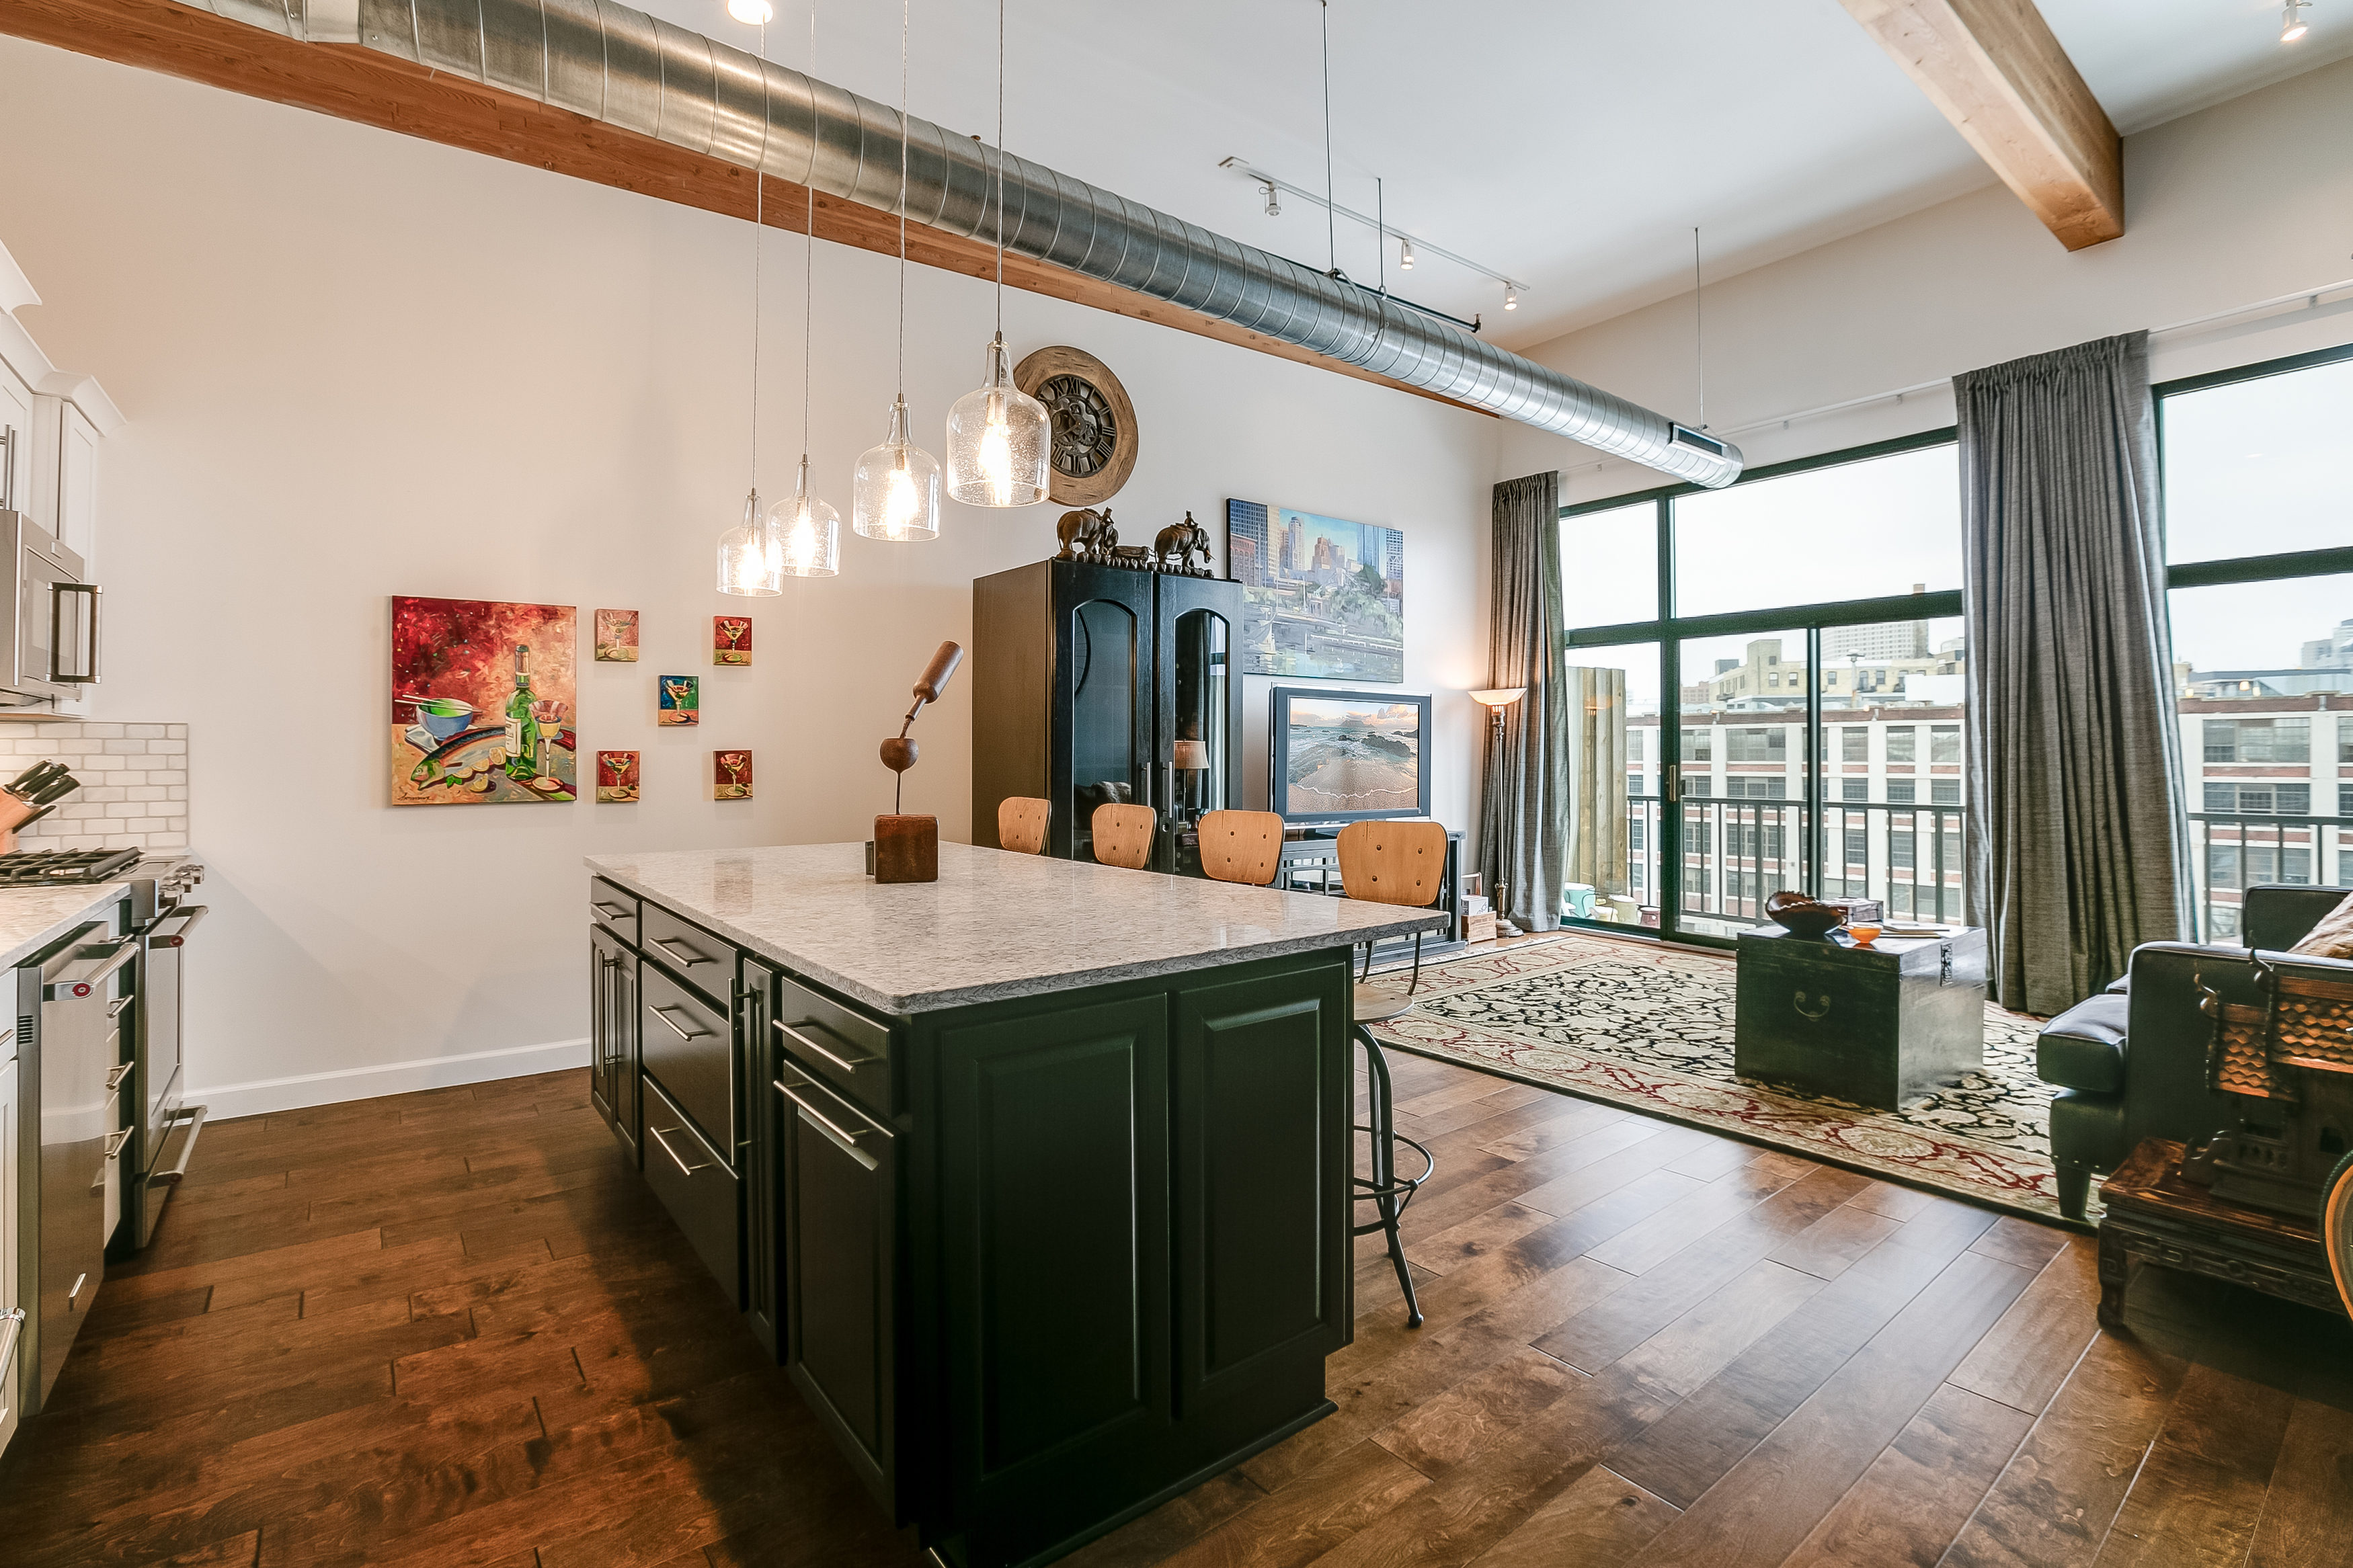 200 S. Water St., Unit 406. Photo courtesy of Corley Real Estate.